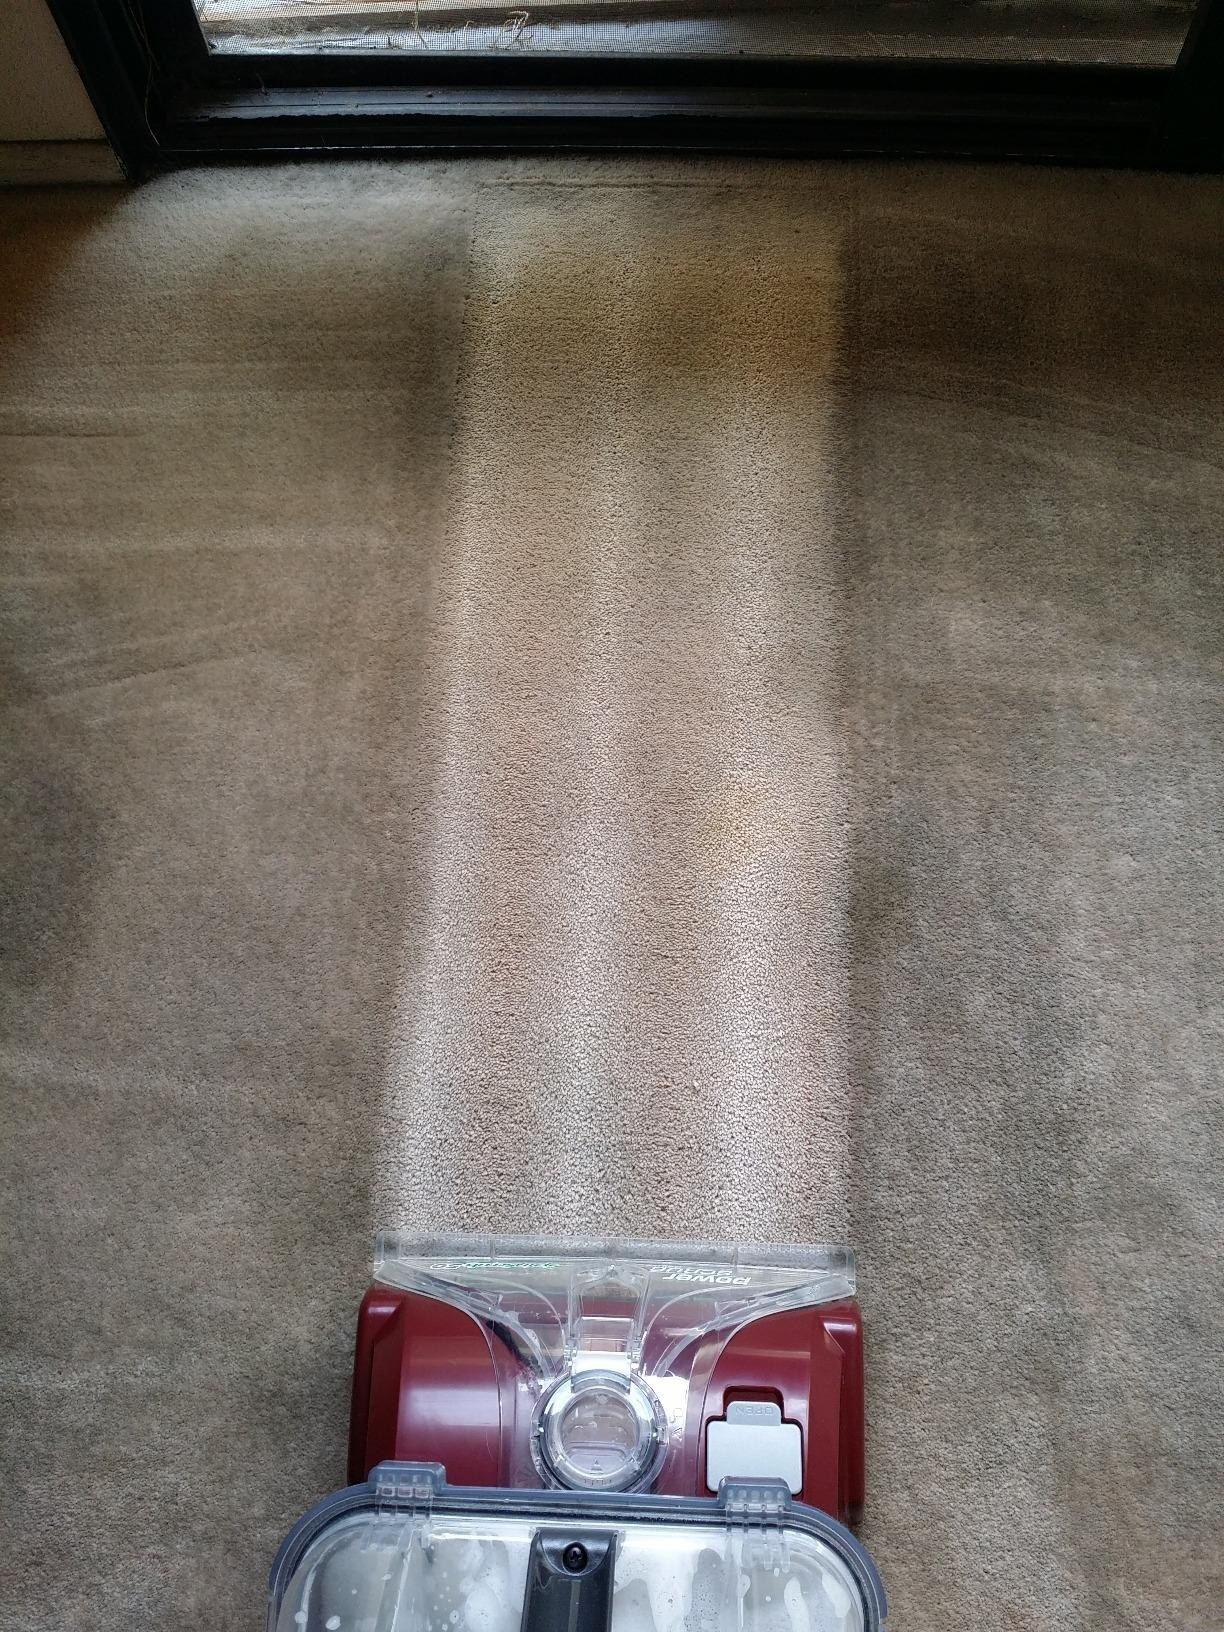 vacuum cleaner cleans a noticeably lighter stripe in carpet